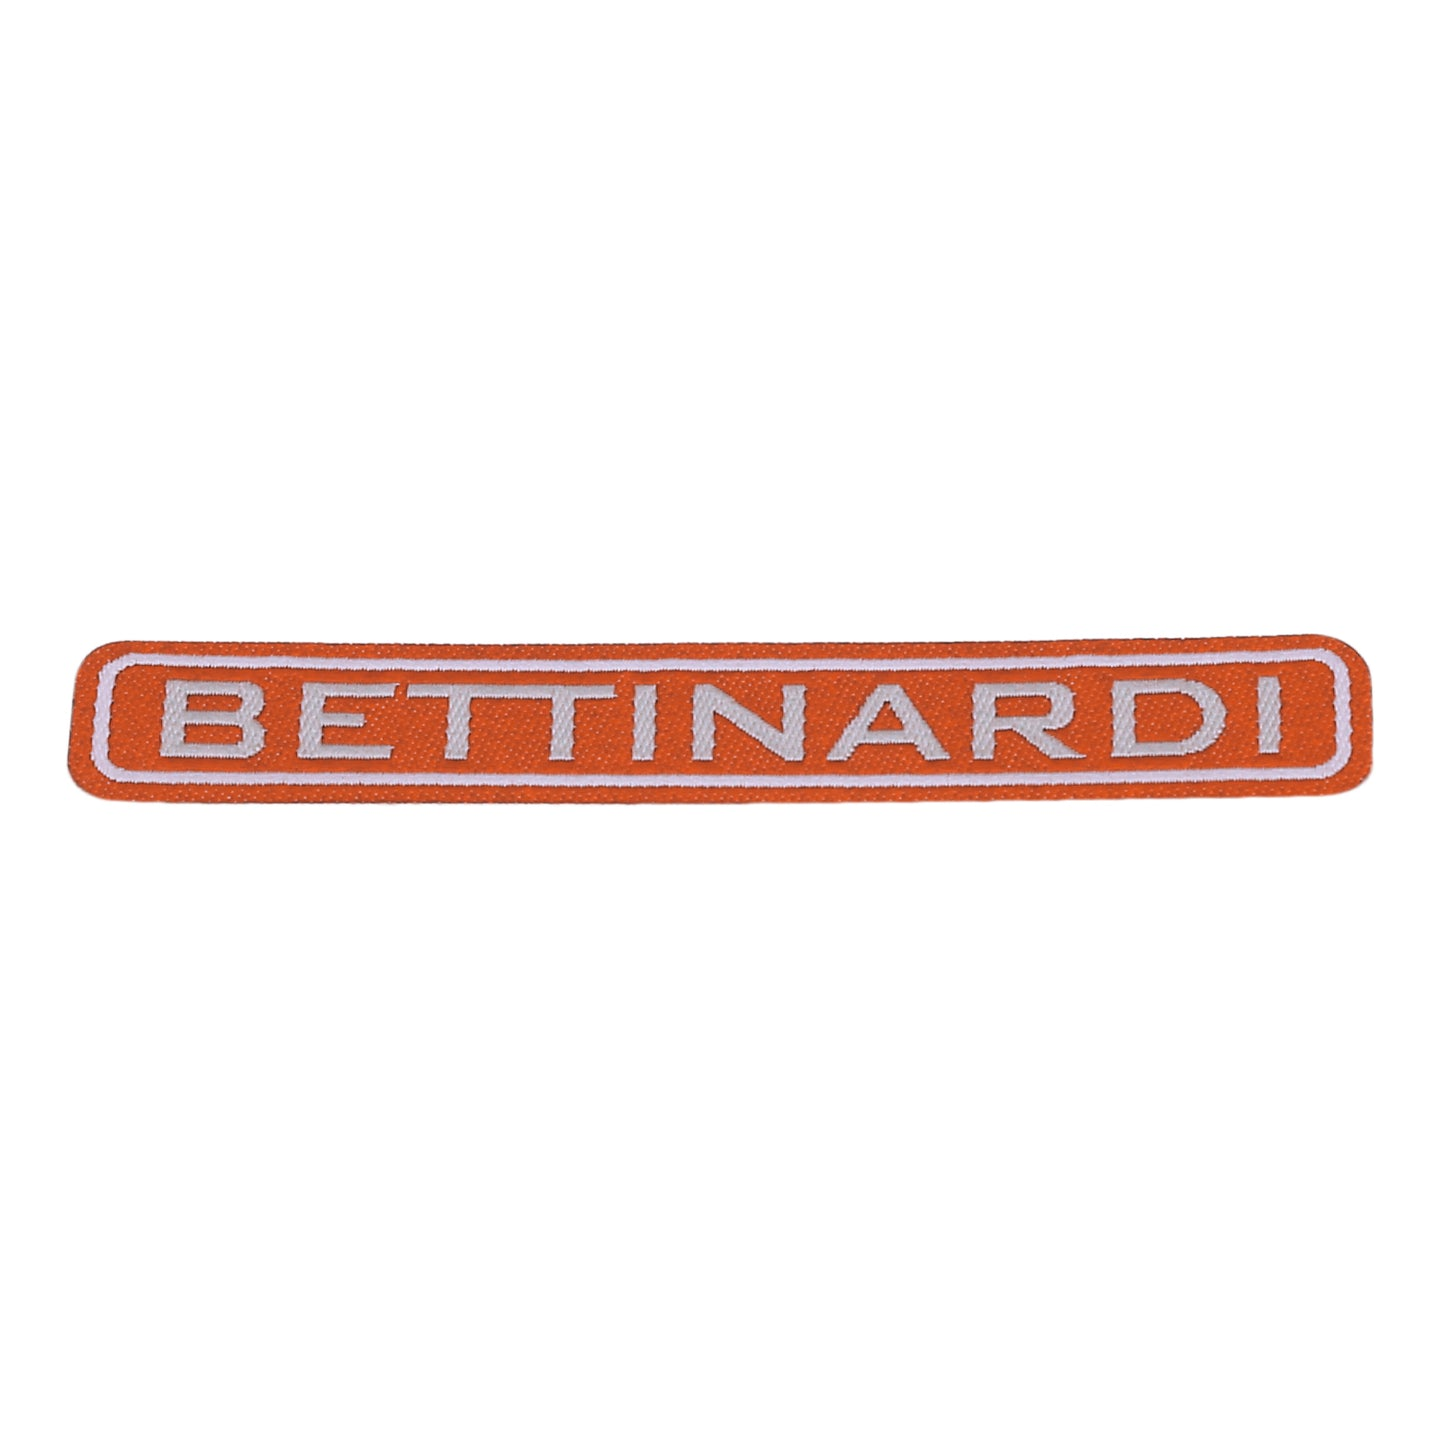 Long Bettinardi Orange & Black Patch - BettinardiGolf